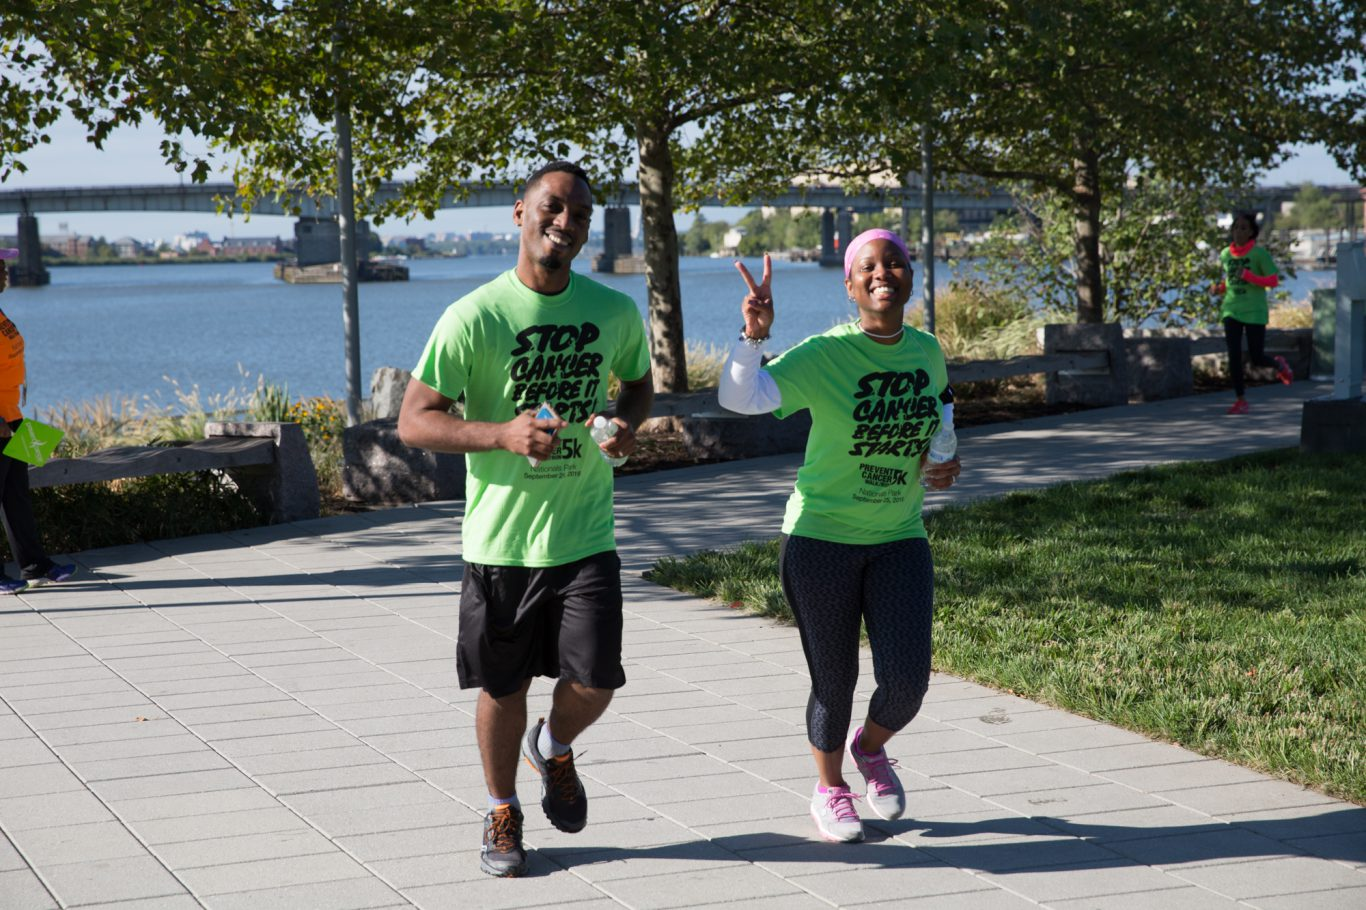 How to train and prepare for your first 5k